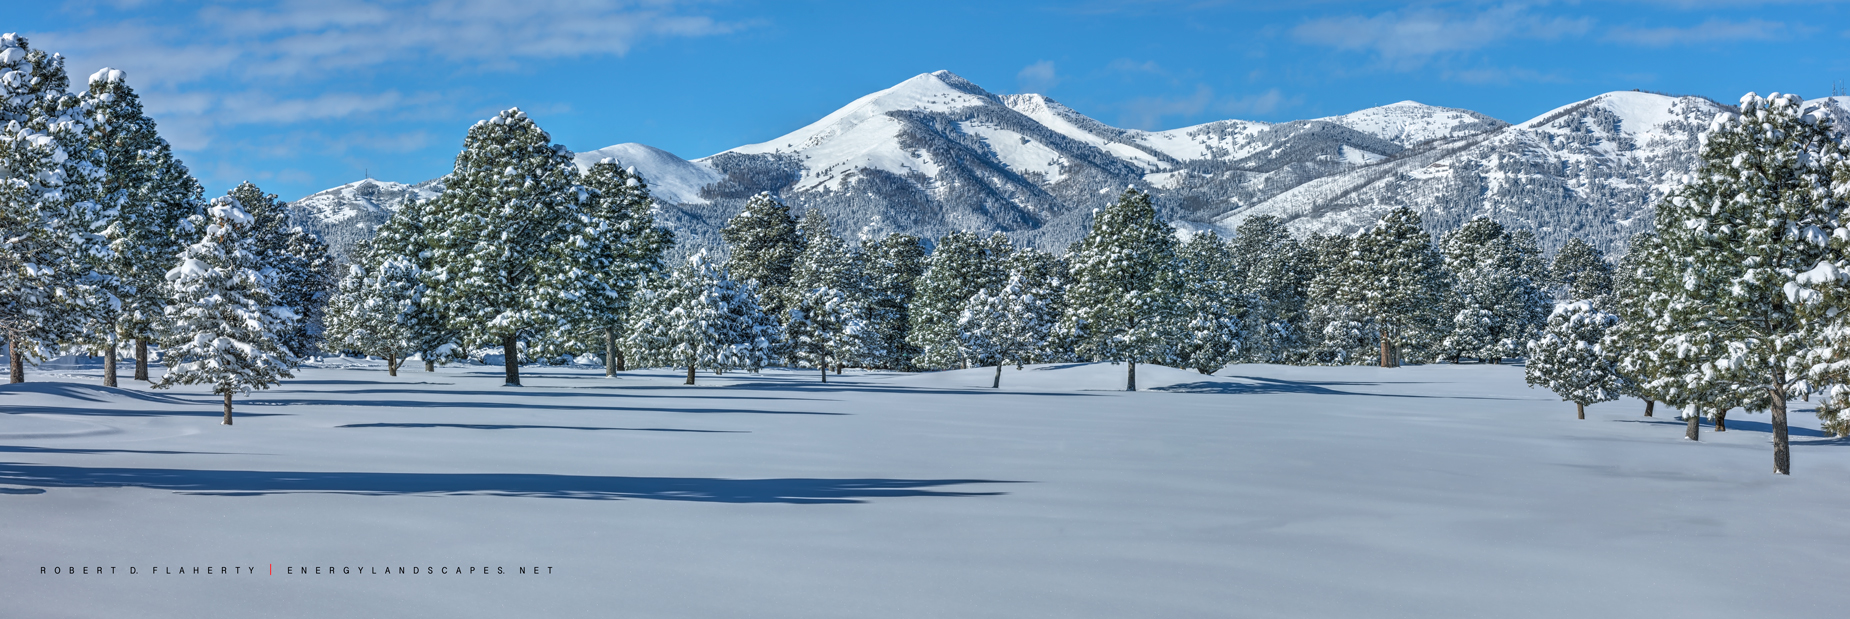 Winter, Ruidoso, snow, New Mexico, Christmas 2018, 2018, high resolution, panorama, snowstorm, snowshoes, sense of depth, photo